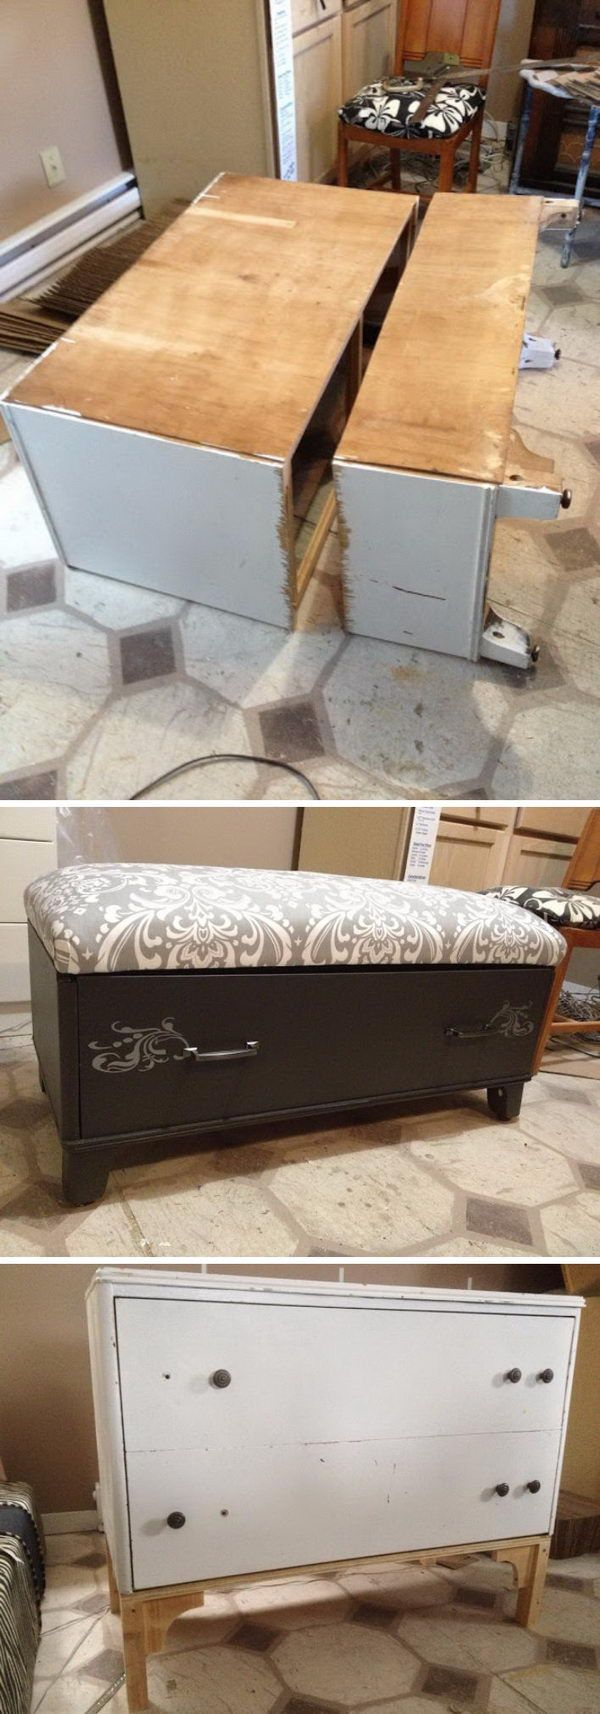 Amazing DIY Ideas To Transform Your Old Furniture DIY ideas